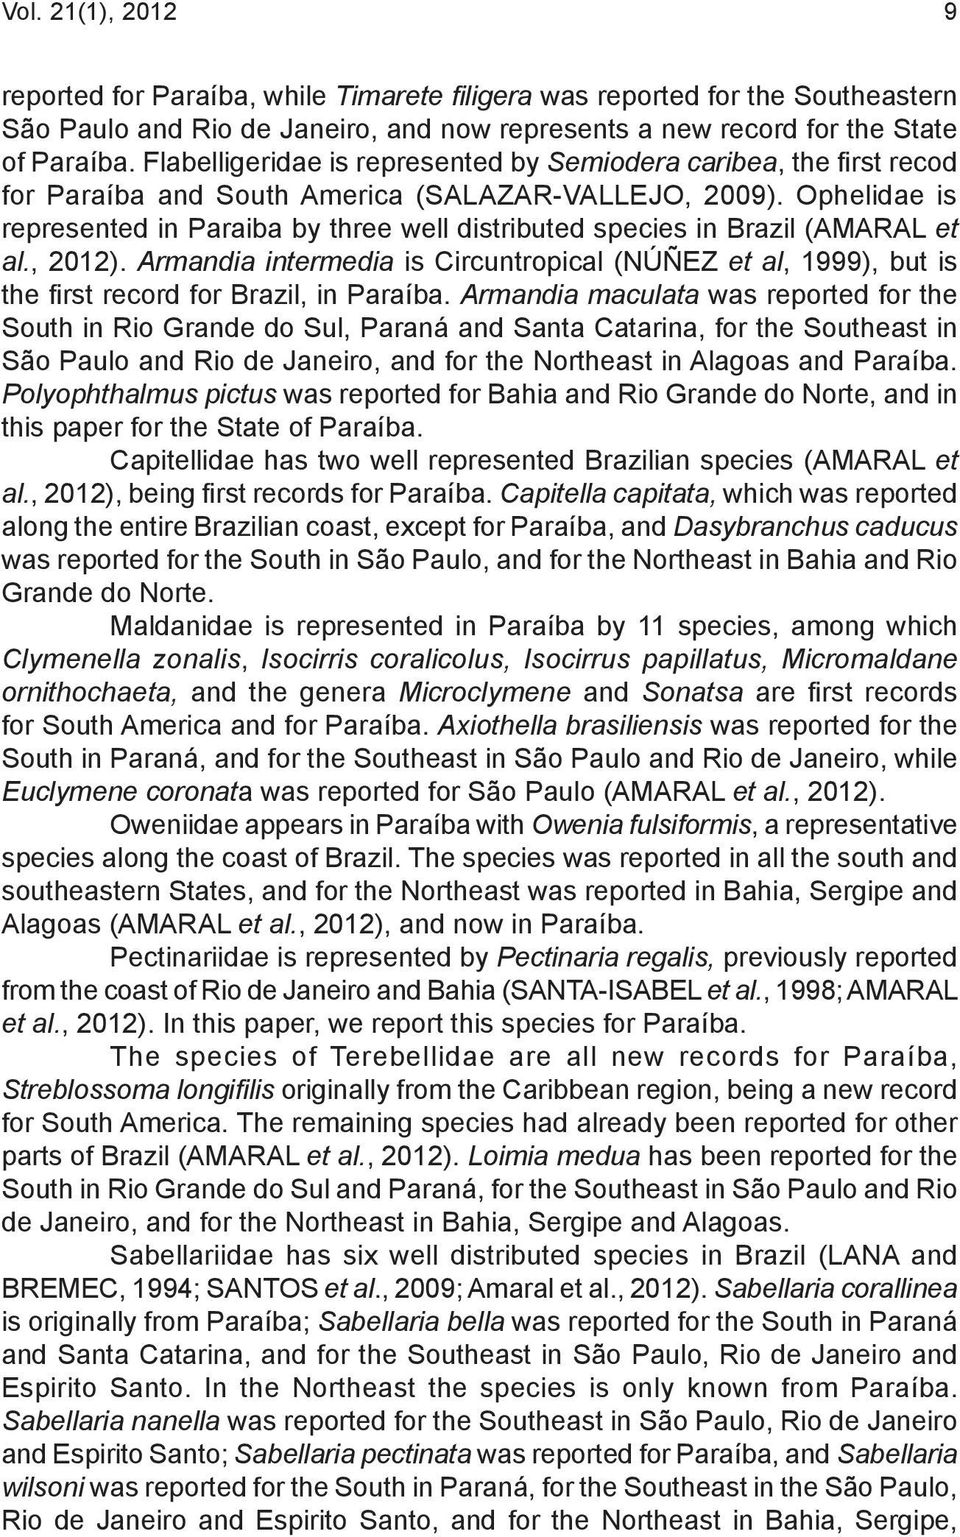 Ophelidae is represented in Paraiba by three well distributed species in Brazil (AMARAL et al., 2012).